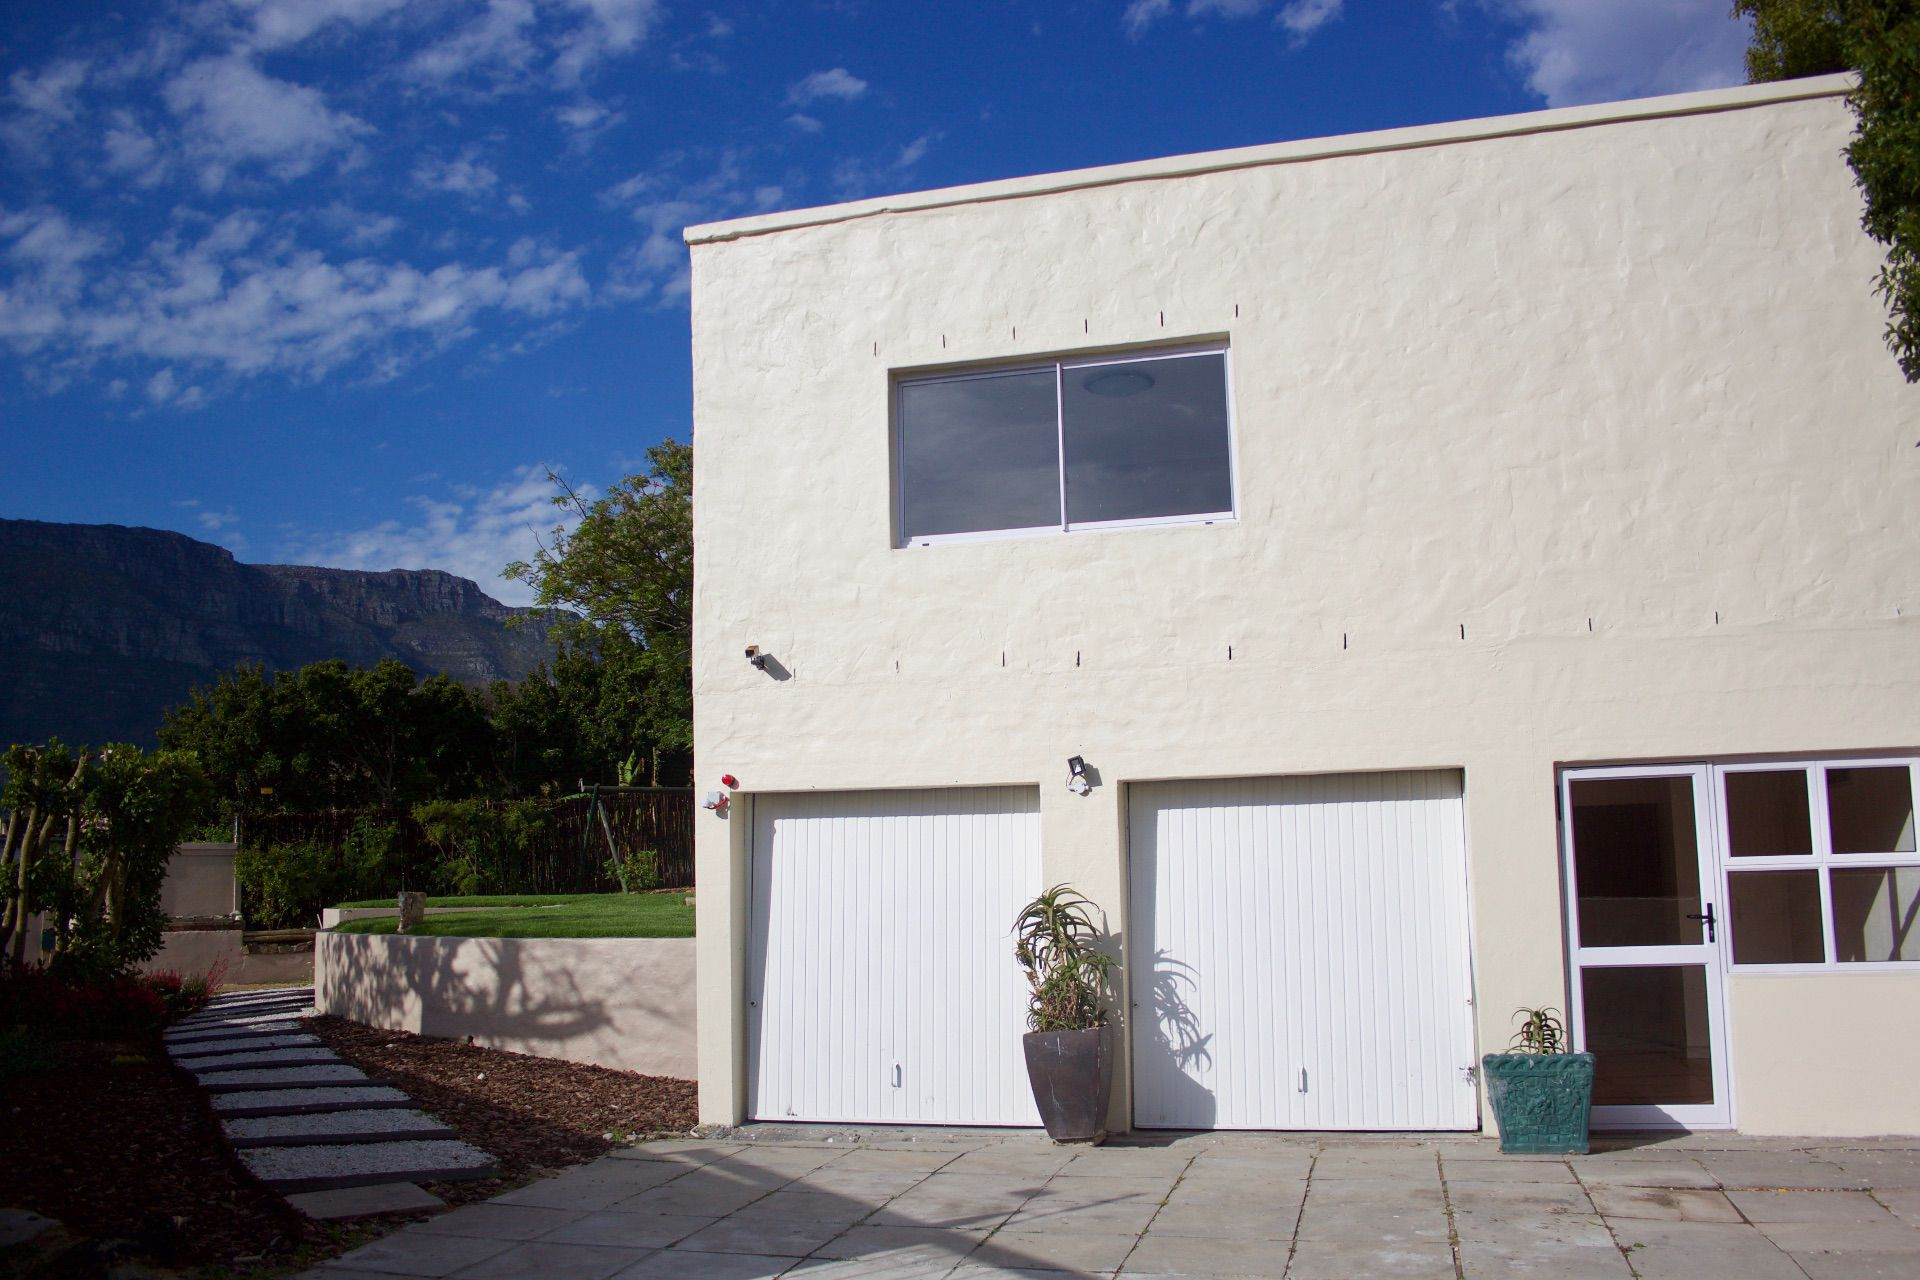 House in Hout Bay - house, garages and entrance to granny flat